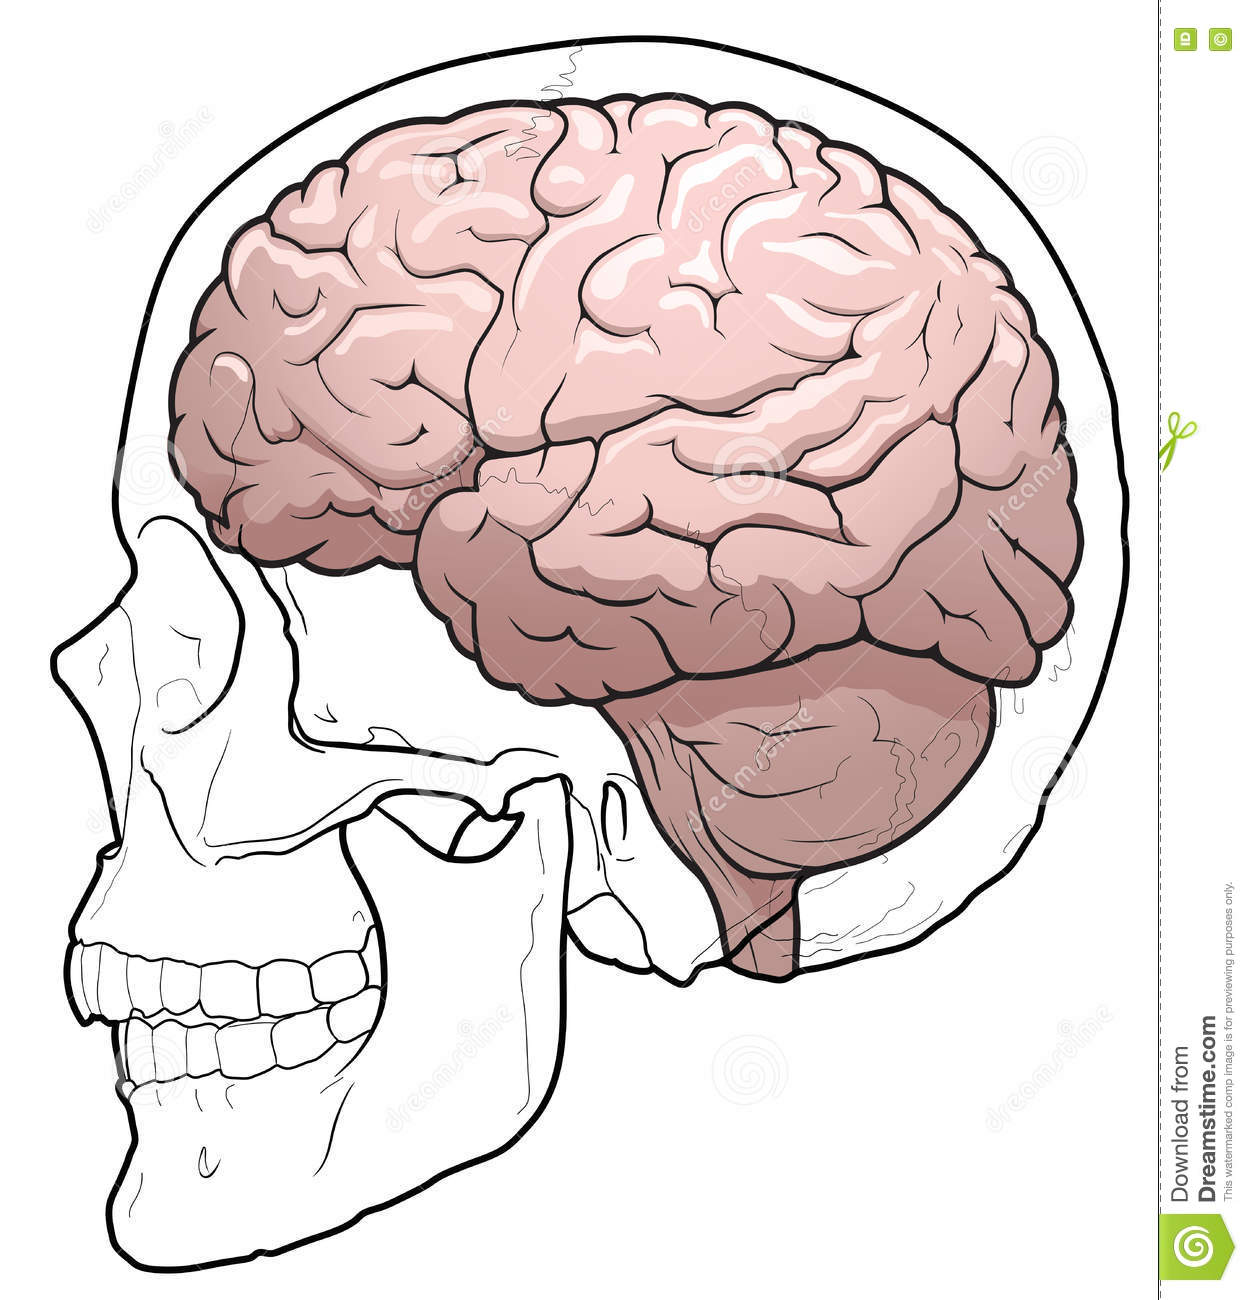 human brain and skull stock vector illustration of lobe 73049041 Shark Brain Diagram human brain and skull